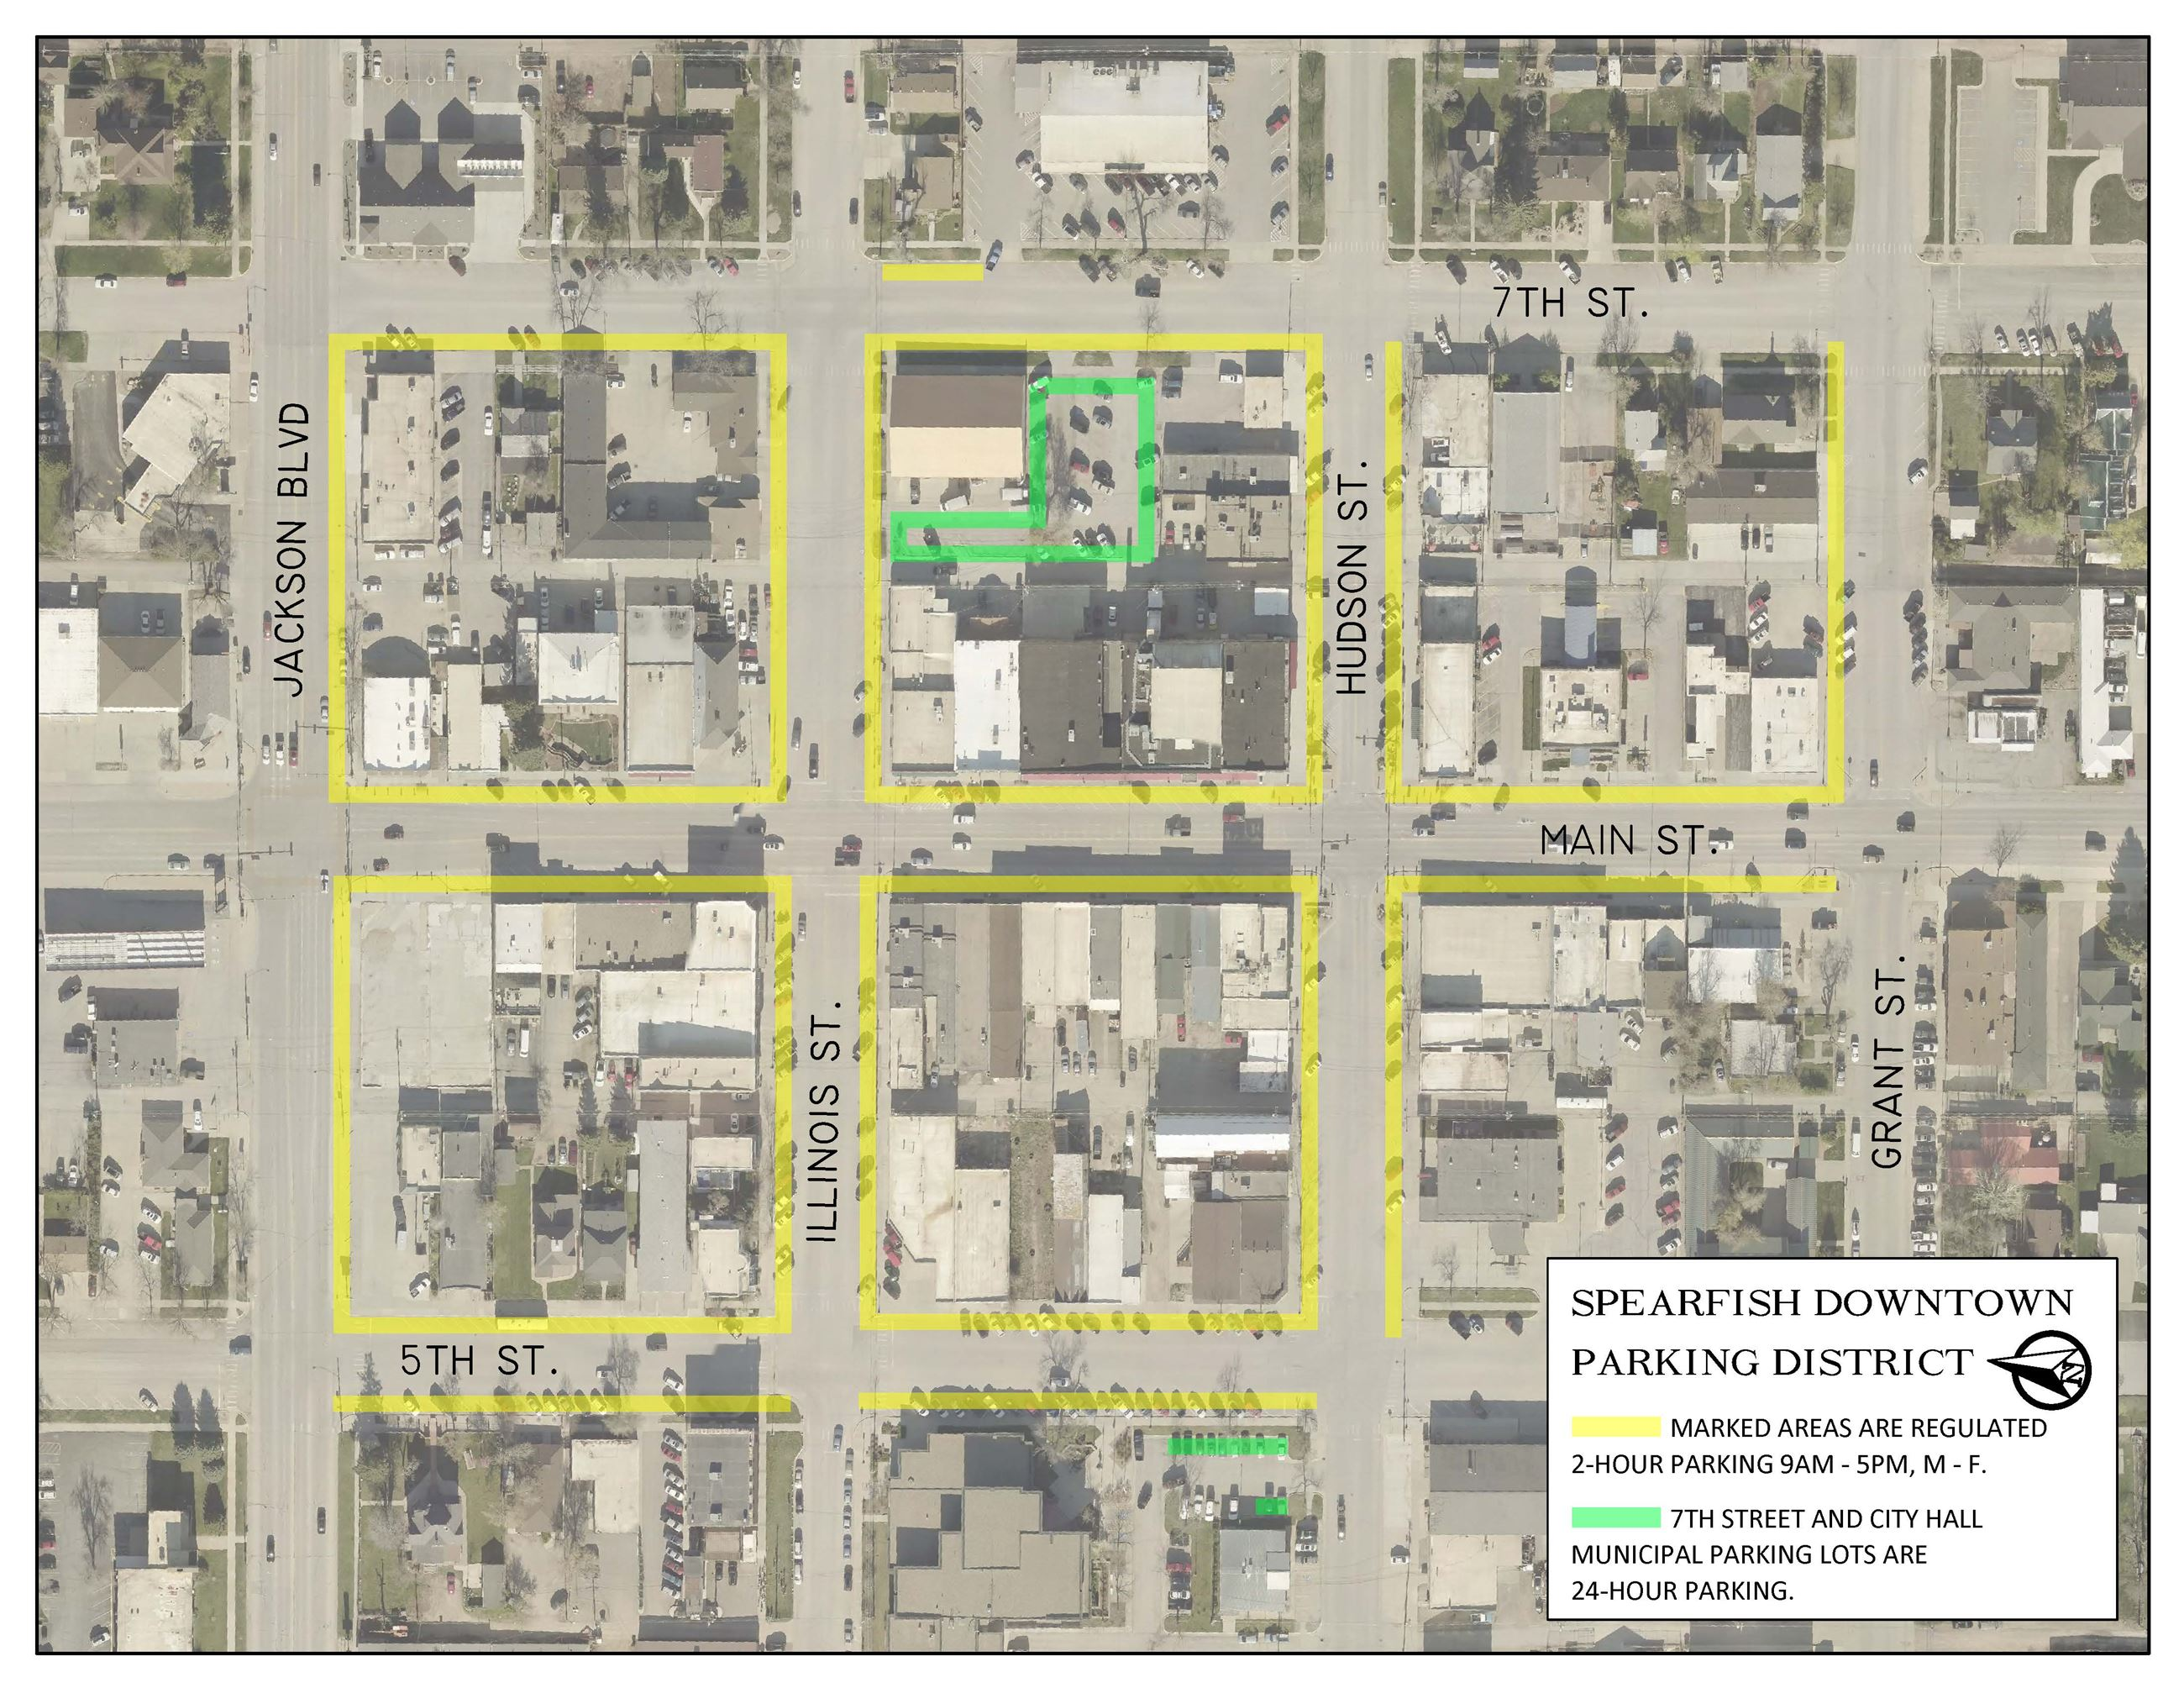 Spearfish Downtown Parking District Map (JPG)